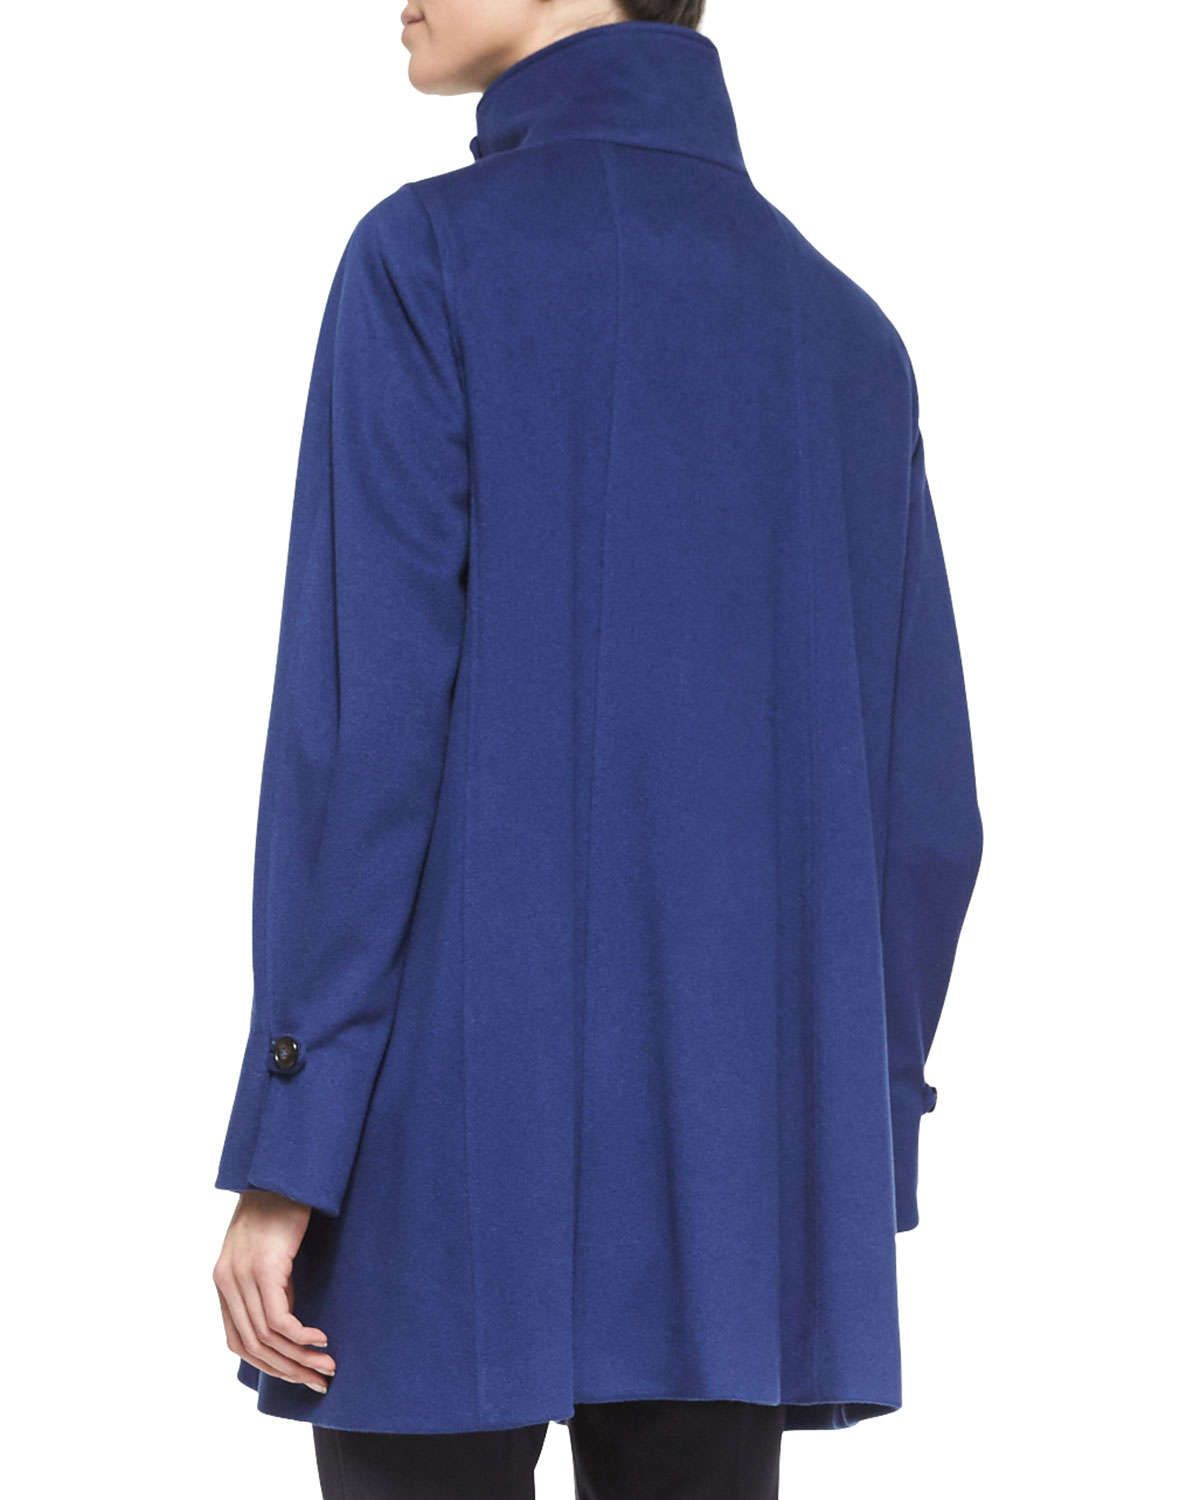 Funnel-Collar Swing Coat, Arles Blue